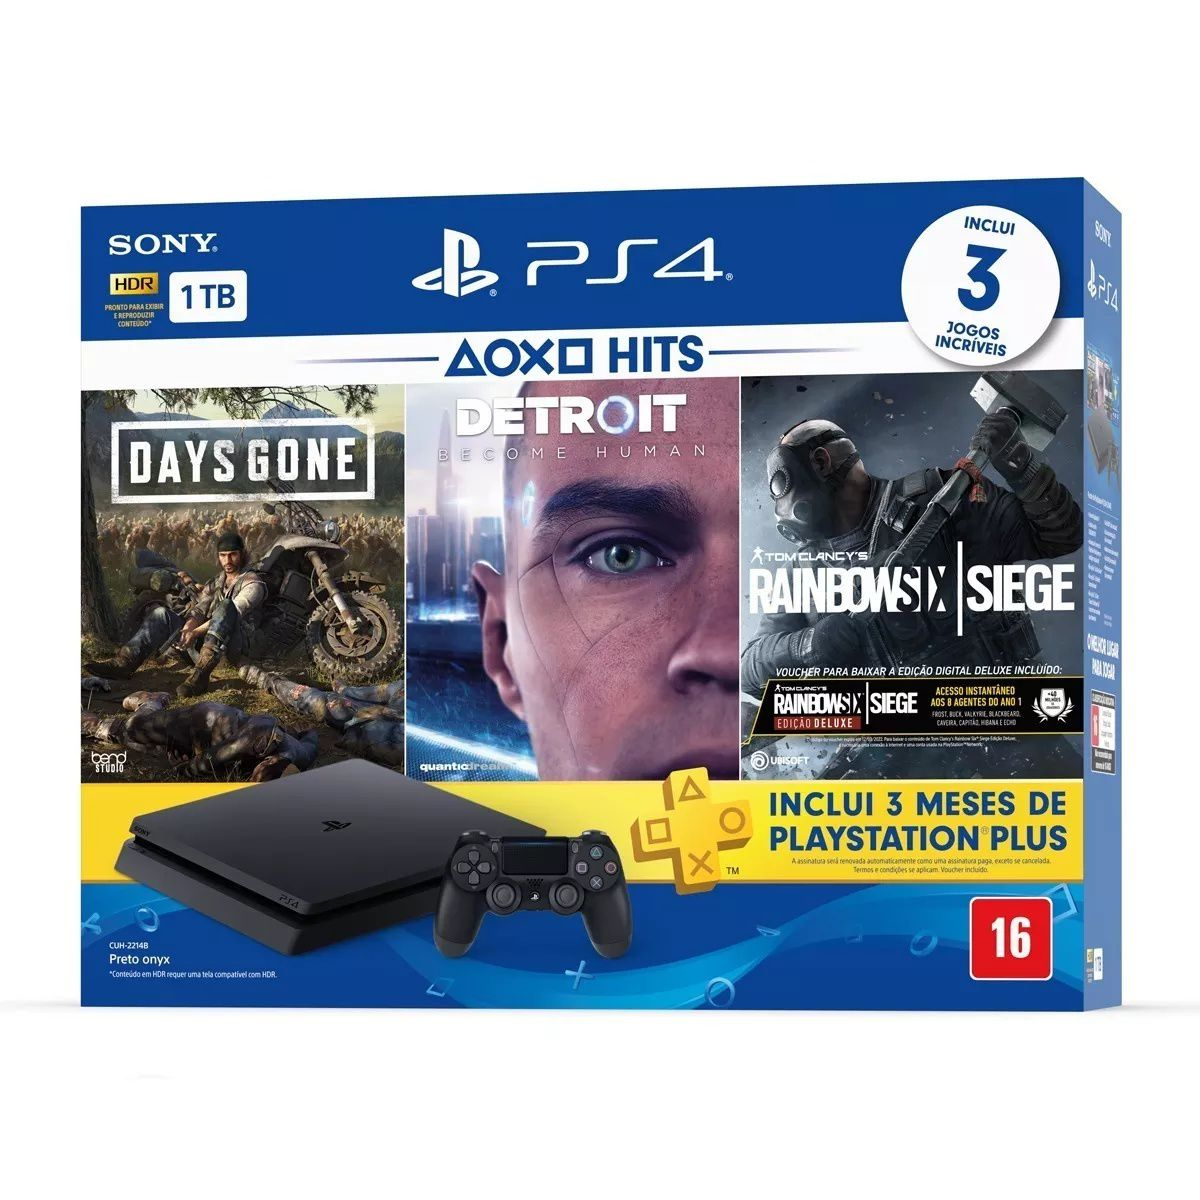 Playstation 4 Slim - 1 Tb + 3 Jogos (Days Gone + Detroit Become Human + Rainbow Six Siege)